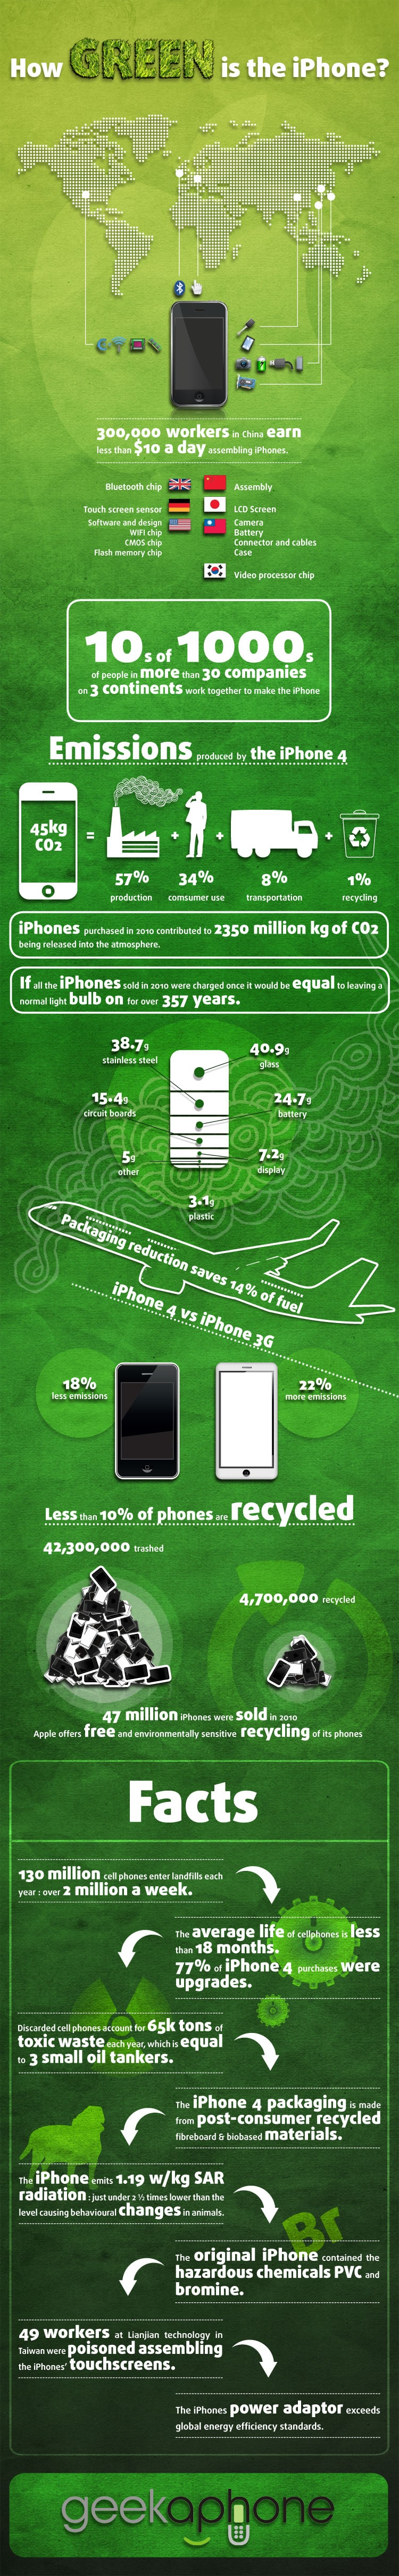 How Green Is The iPhone… [Infographic]